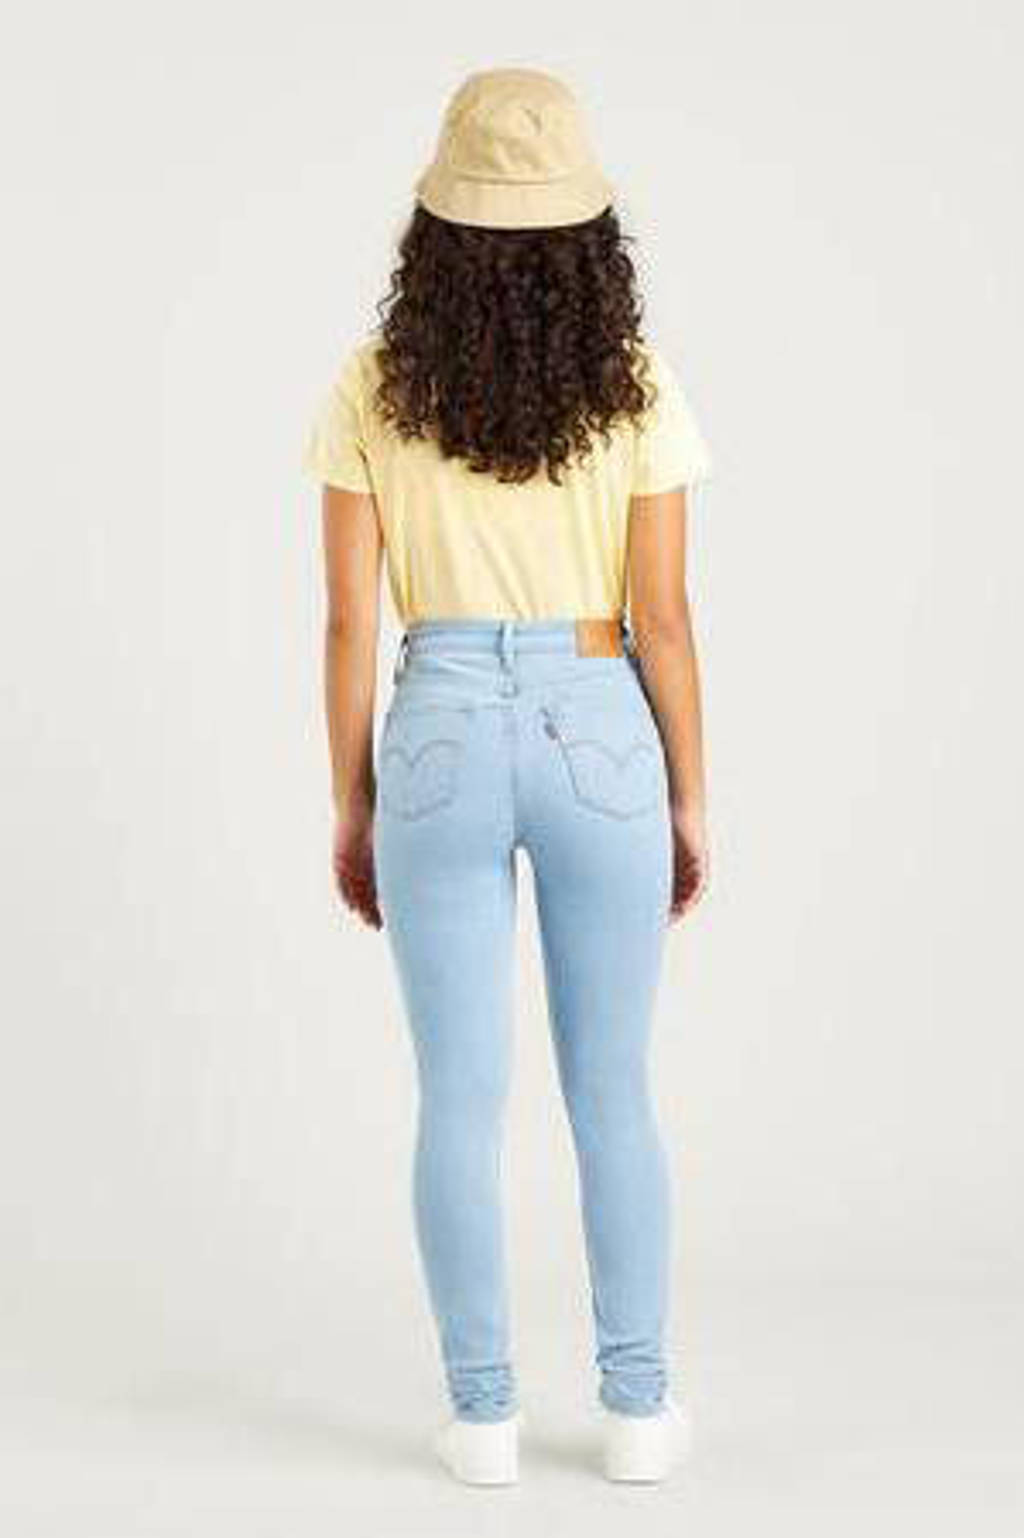 Levi's 721 HIGH RISE SKINNY high waist skinny jeans stonewashed, RIO LUMINARY